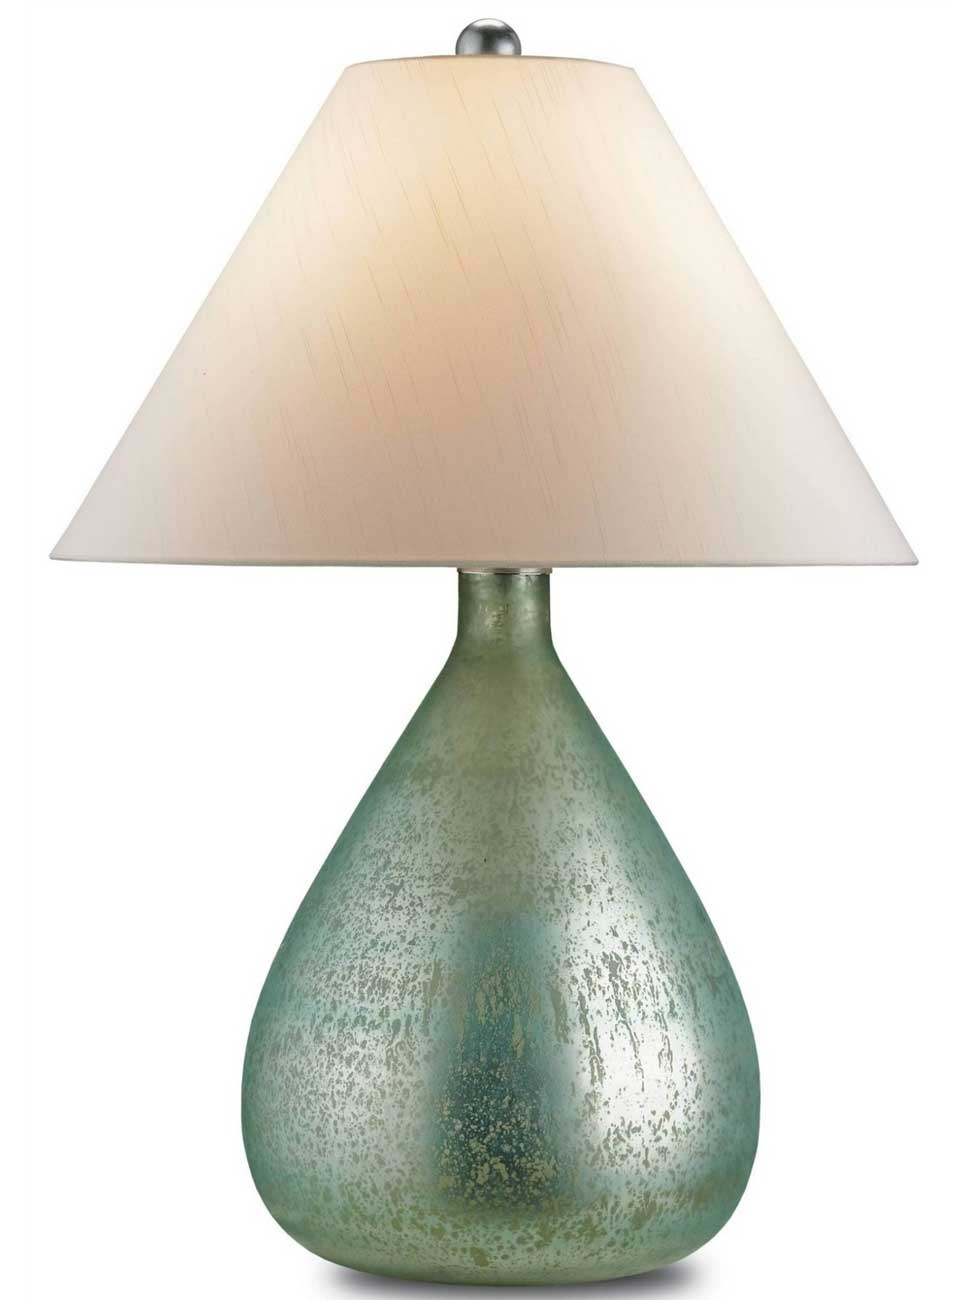 Aqua glass table lamp are one of the most elegant looking lamps aqua glass table lamp photo 1 geotapseo Images